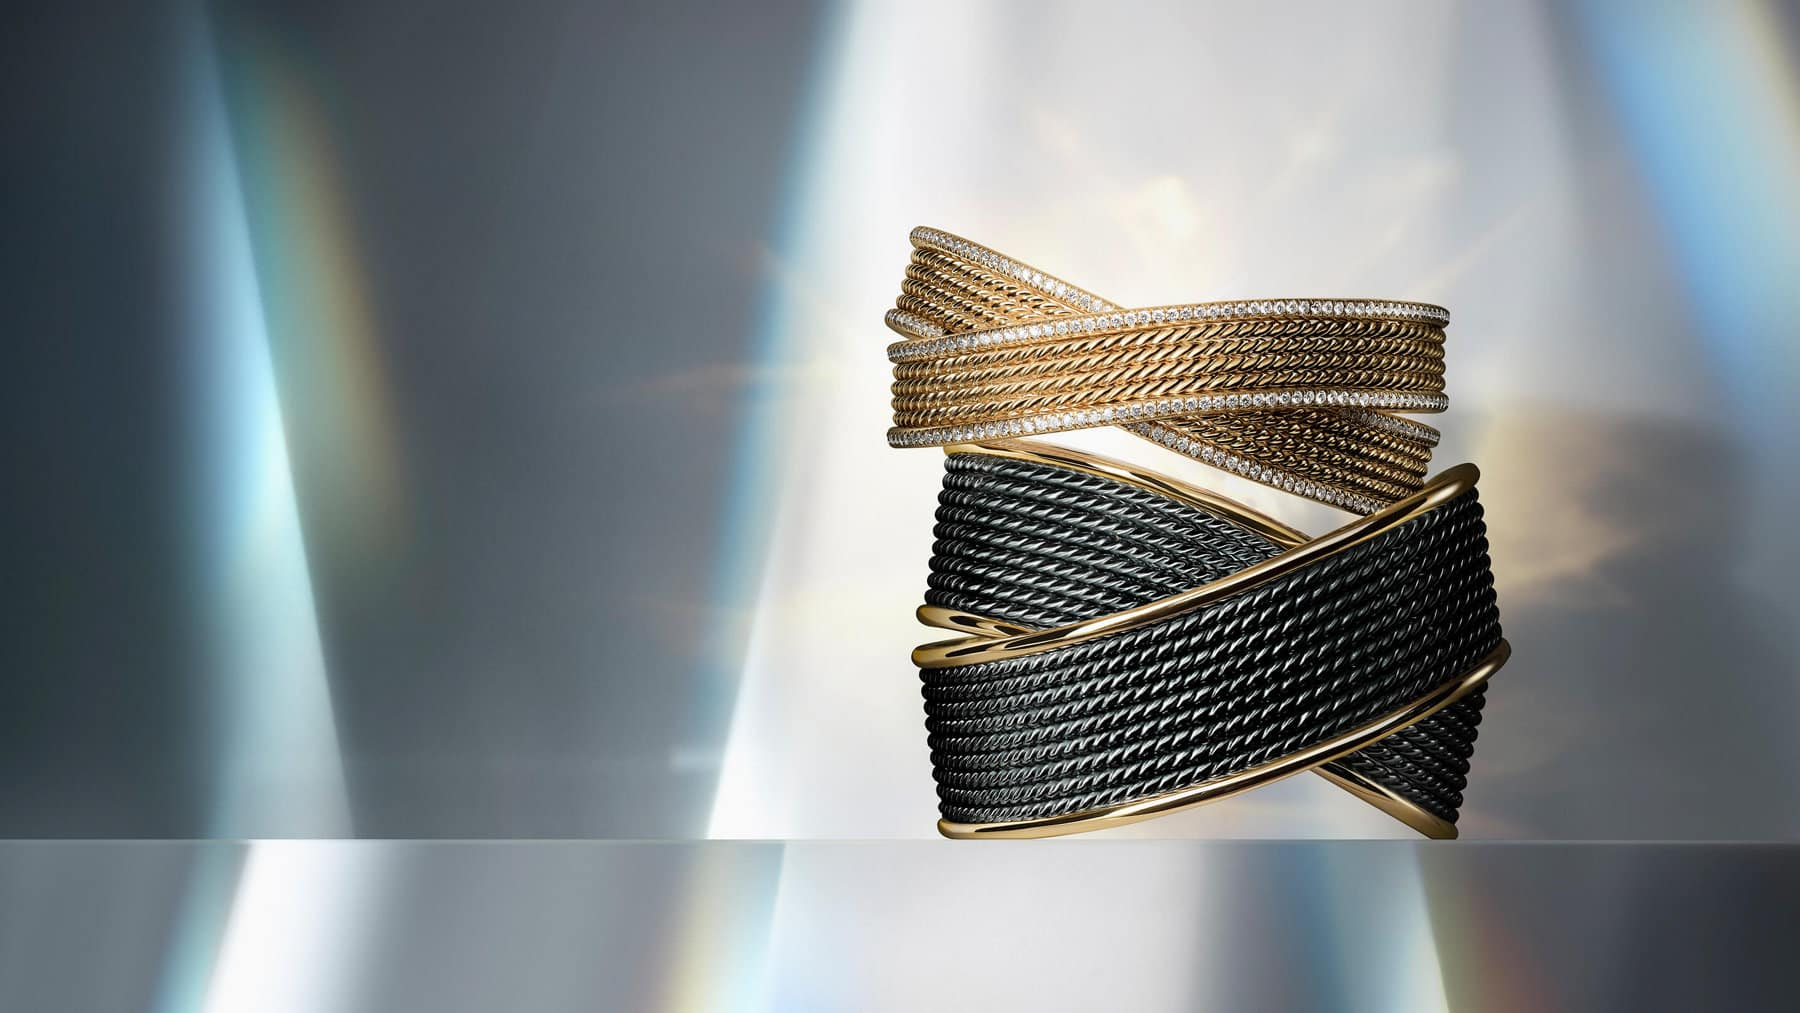 A color photo shows two David Yurman crossover cuff bracelets stacked on top of each other from the DY Origami collection. The top cuff is crafted from 18K yellow gold with pavé diamond accents. The bottom cuff is crafted from blackened sterling silver with 18K yellow gold accents. In the background are reflections of rainbow-hued light.